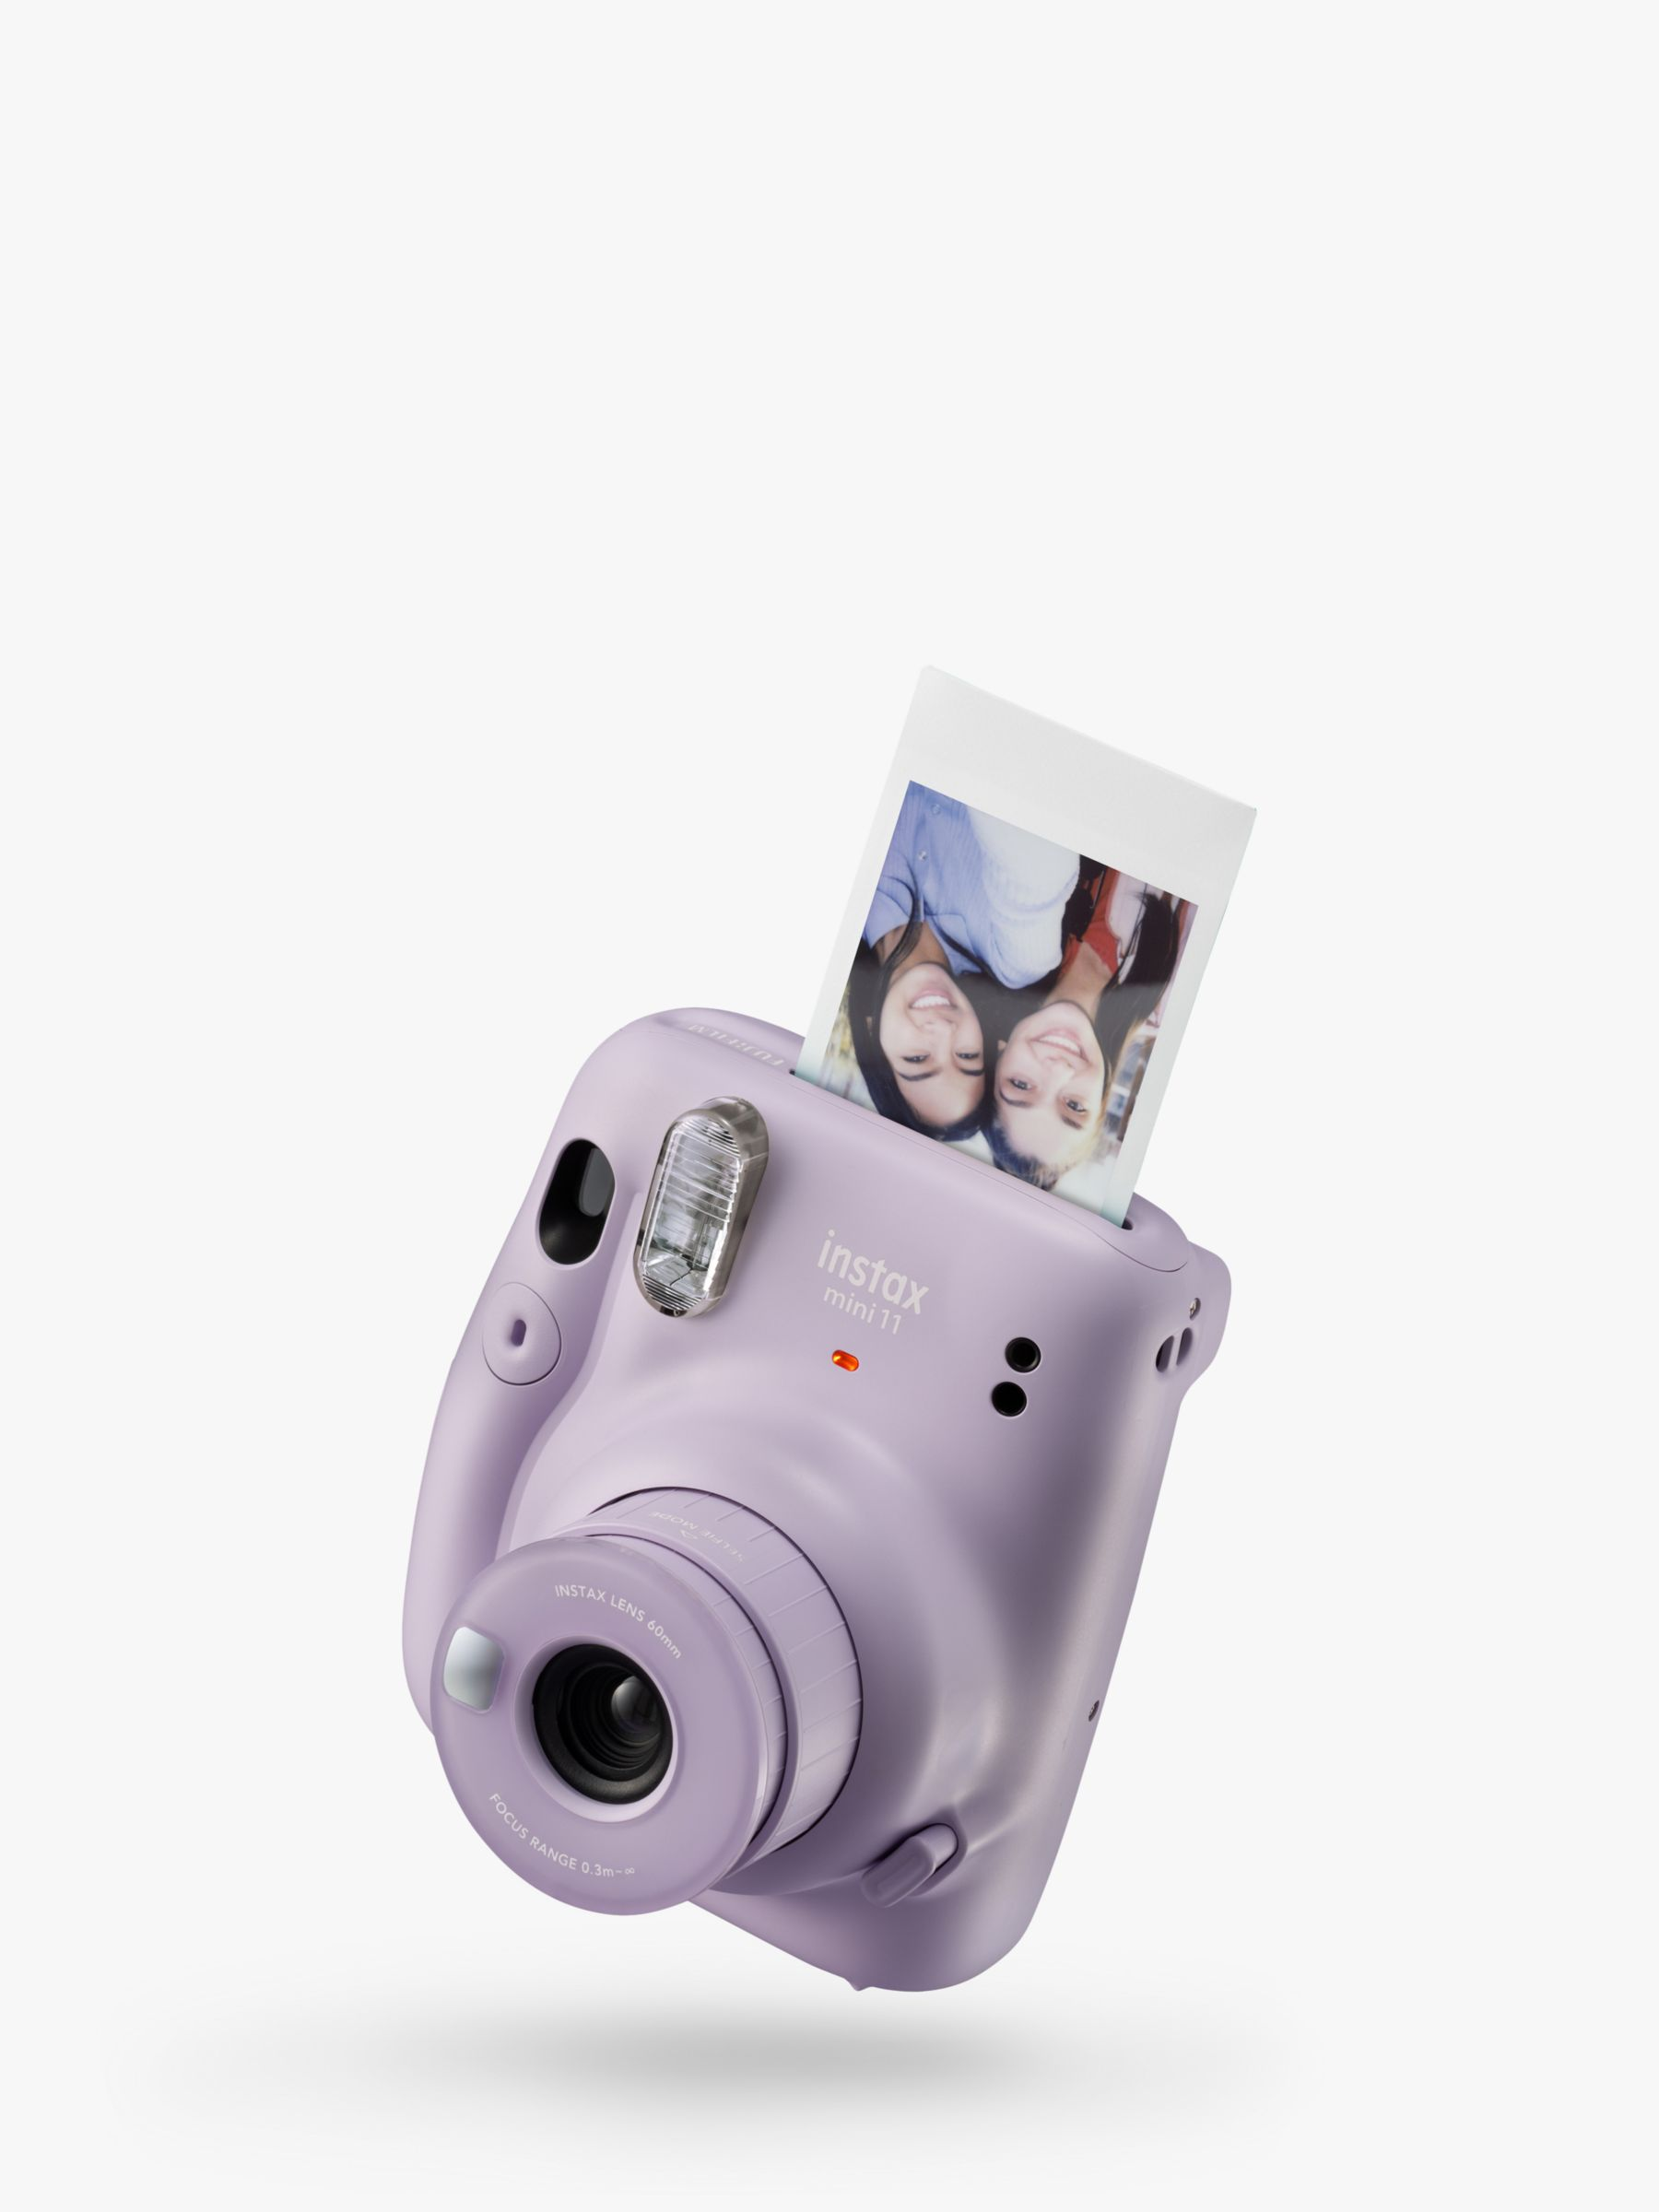 Fujifilm Instax Mini 11 Instant Camera with Built-In Flash & Hand Strap